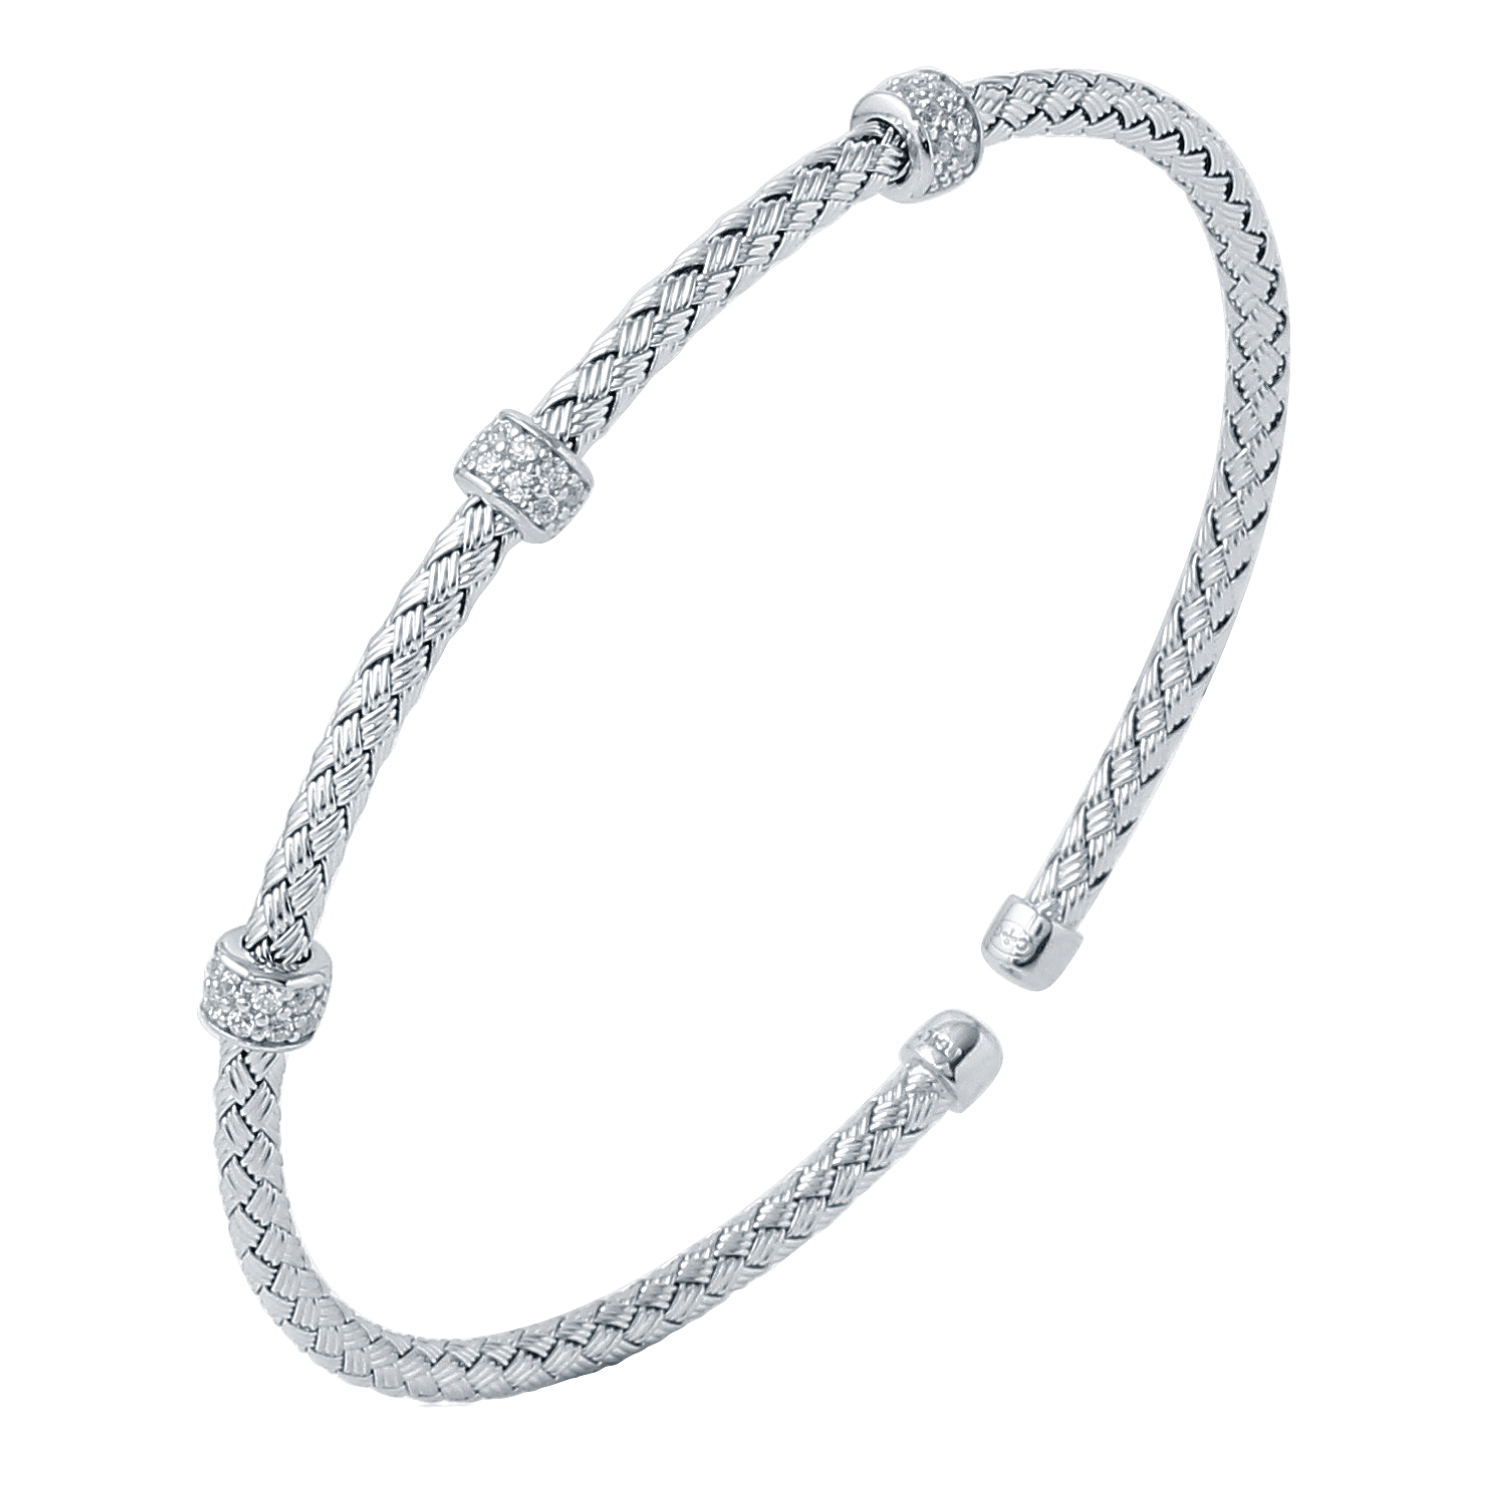 CHARLES GARNIER - Sterling Silver and CZ Roundel Cuff Bangle